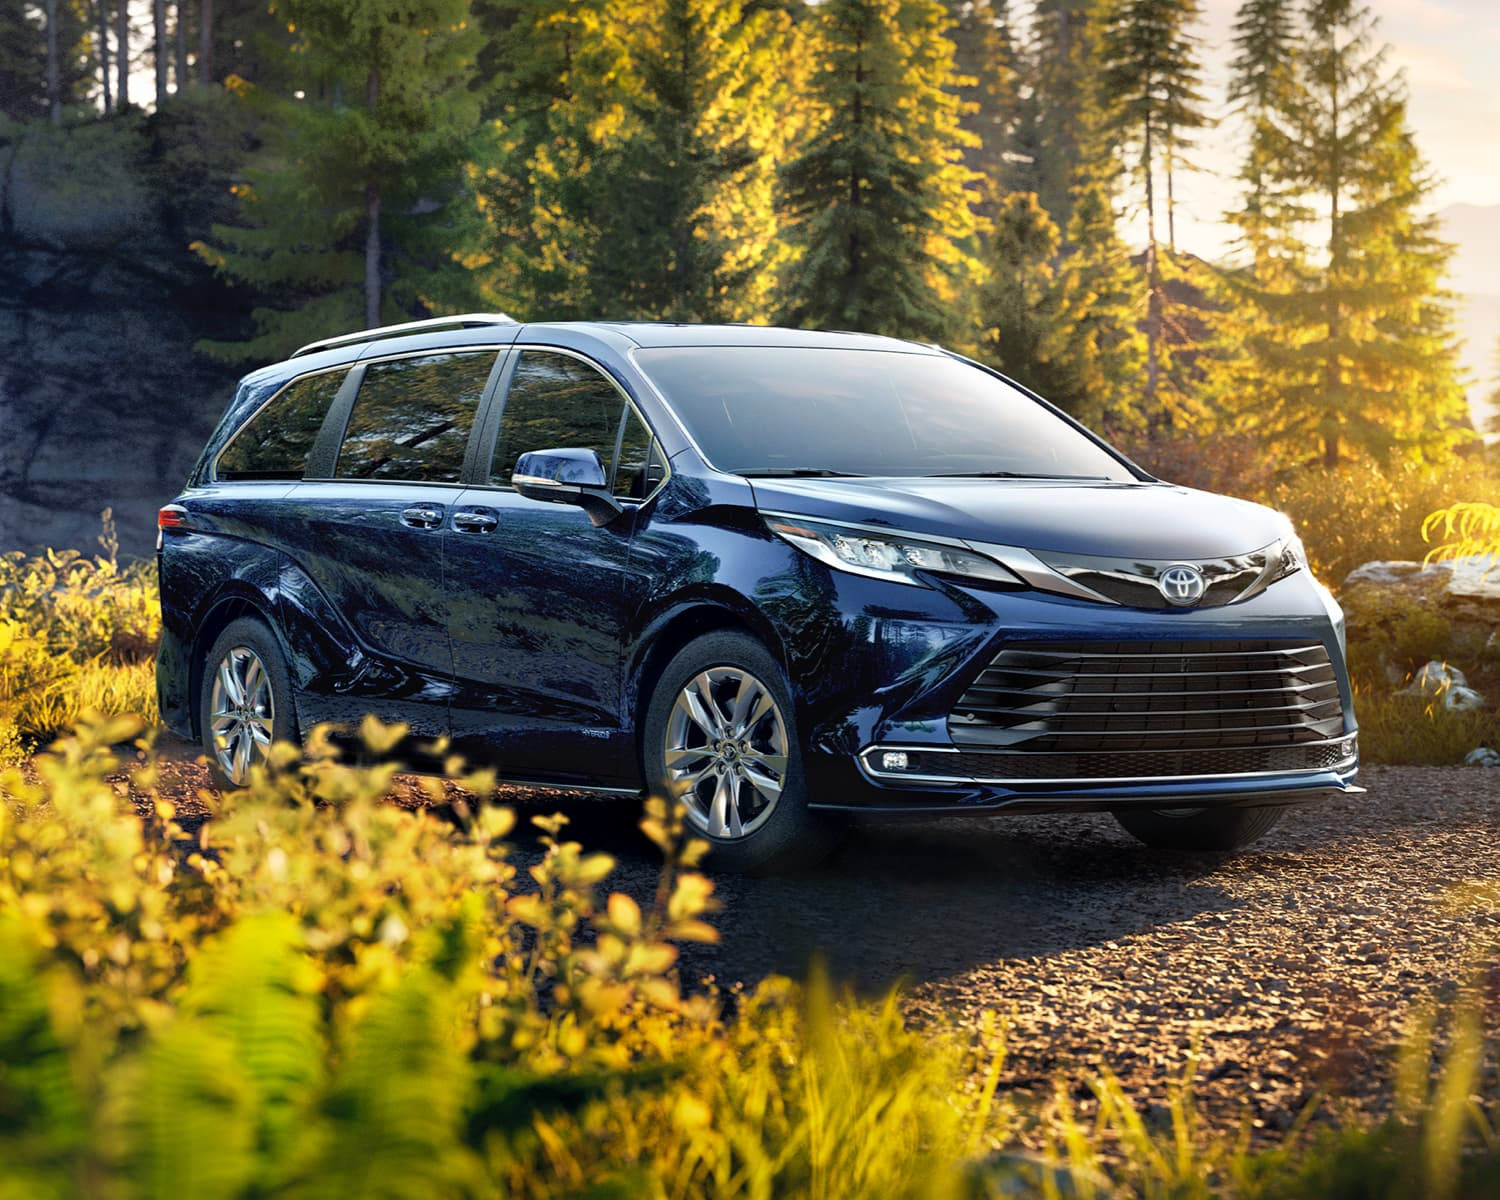 2021 Black Toyota Sienna, parked in the wood, glistening from the sun.